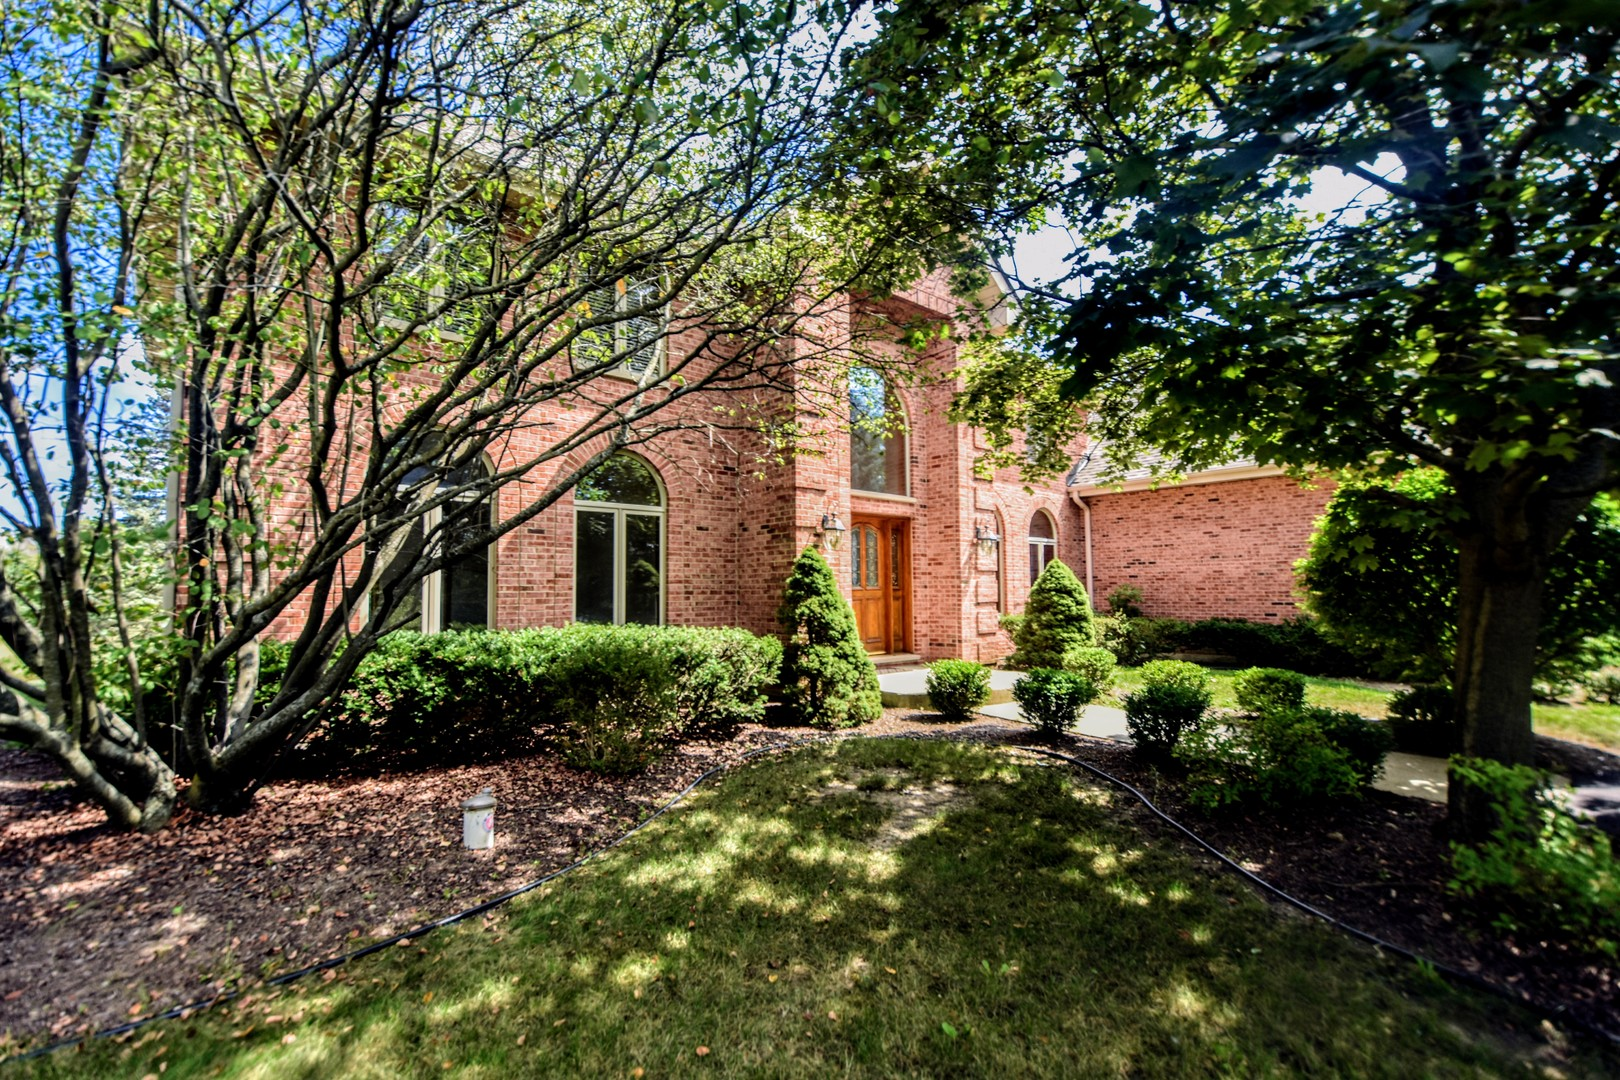 16 Greenbriar Lane, Hawthorn Woods, Illinois 60047